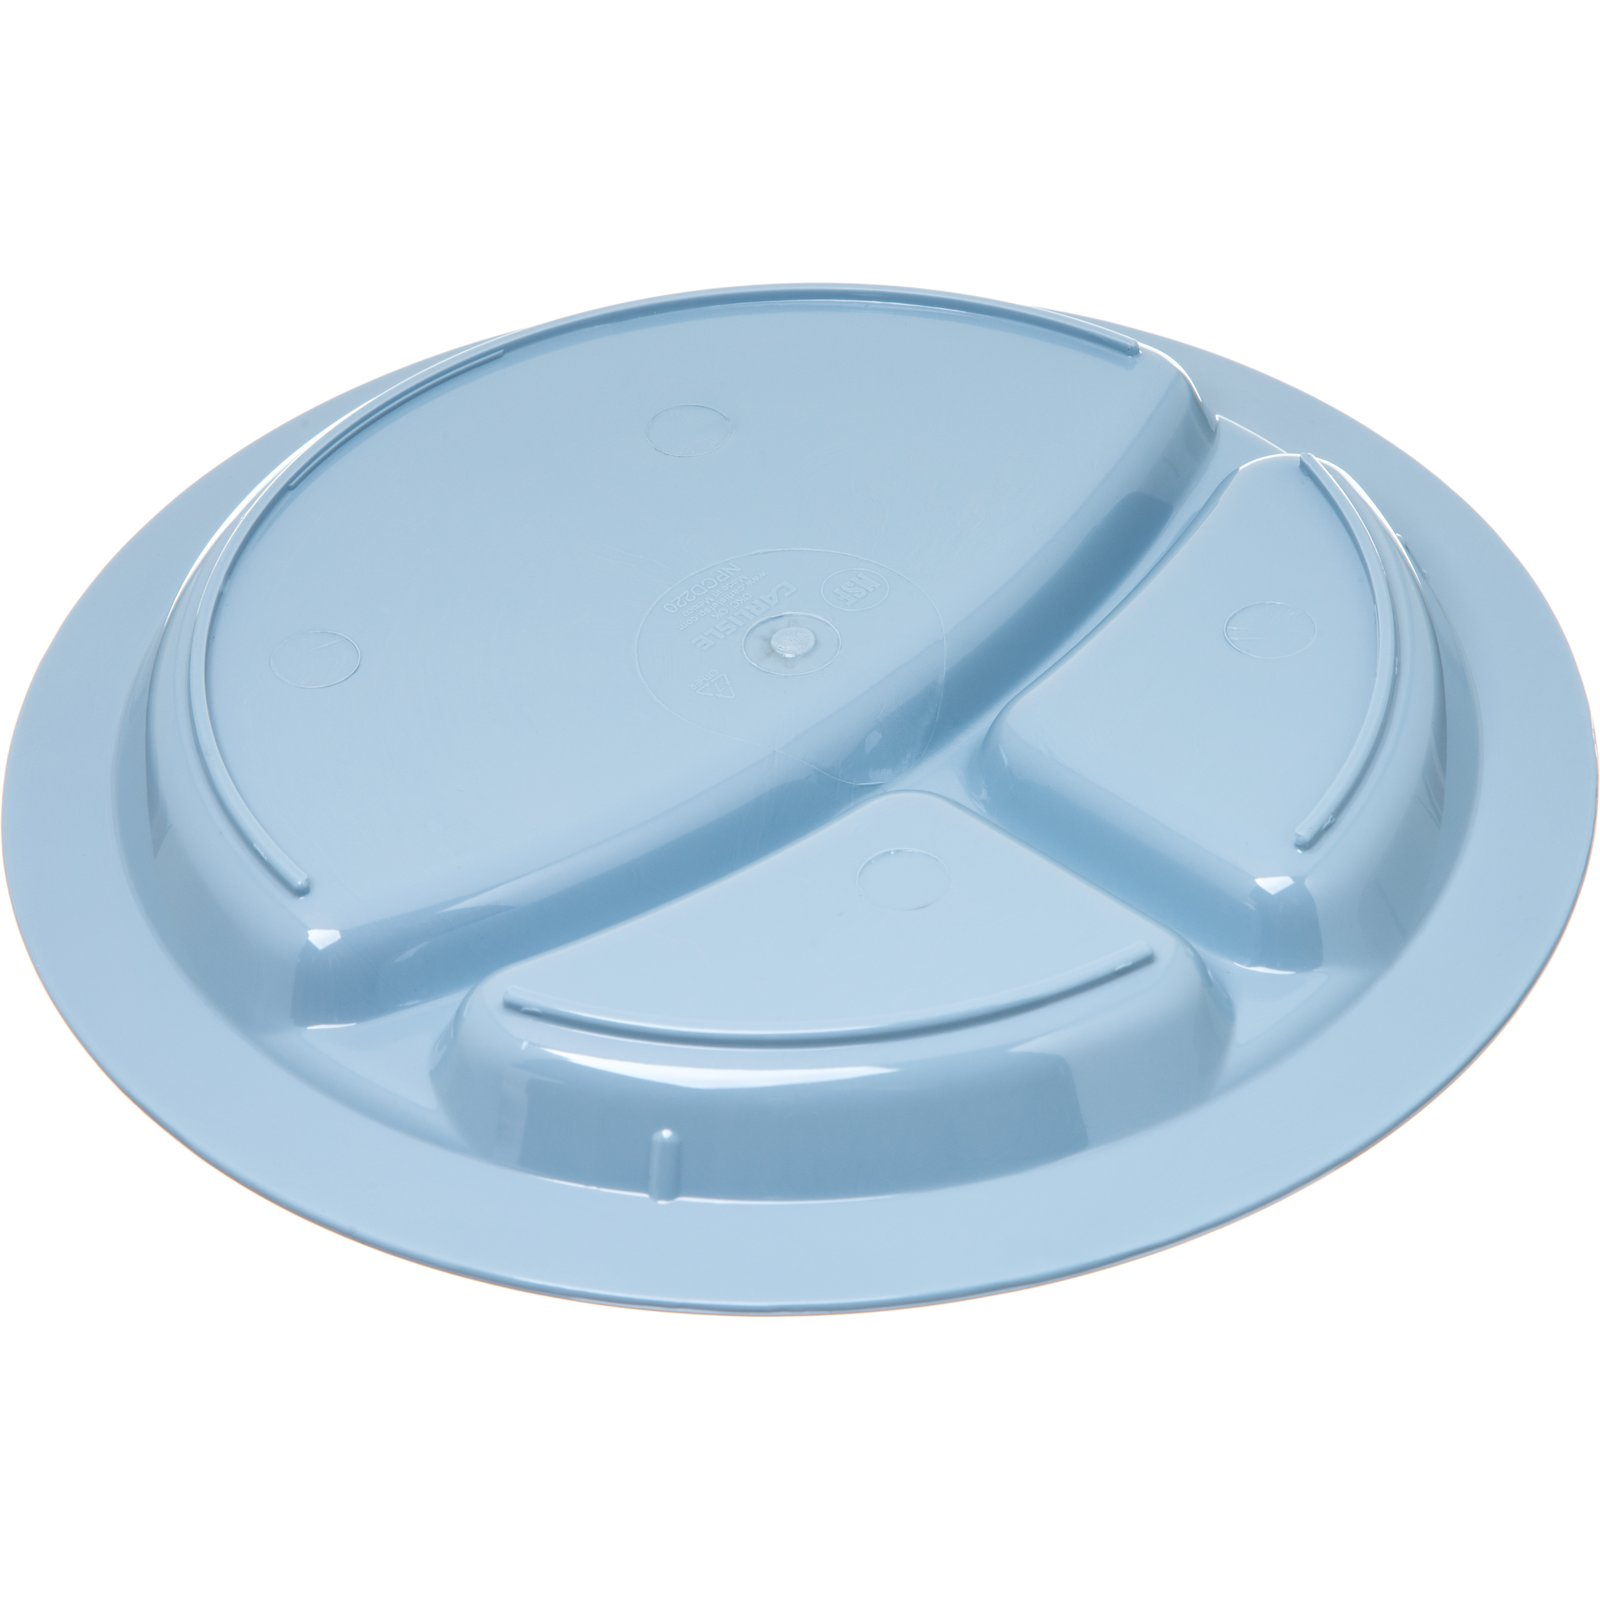 ... PCD22059 - Polycarbonate Narrow Rim 3-Compartment Plate 9\  - Slate Blue  sc 1 st  Carlisle FoodService Products & PCD22059 - Polycarbonate Narrow Rim 3-Compartment Plate 9\